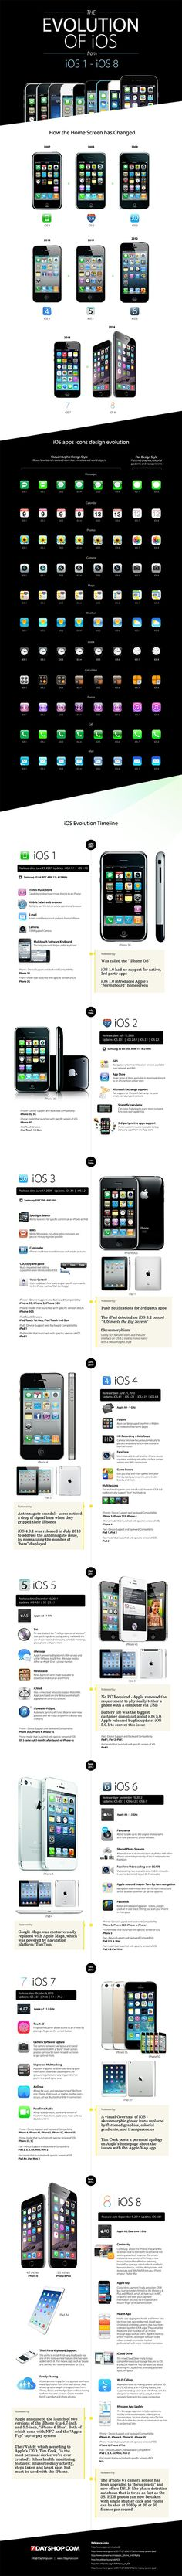 The evolution of iOS since its inception (2007 - 2014)